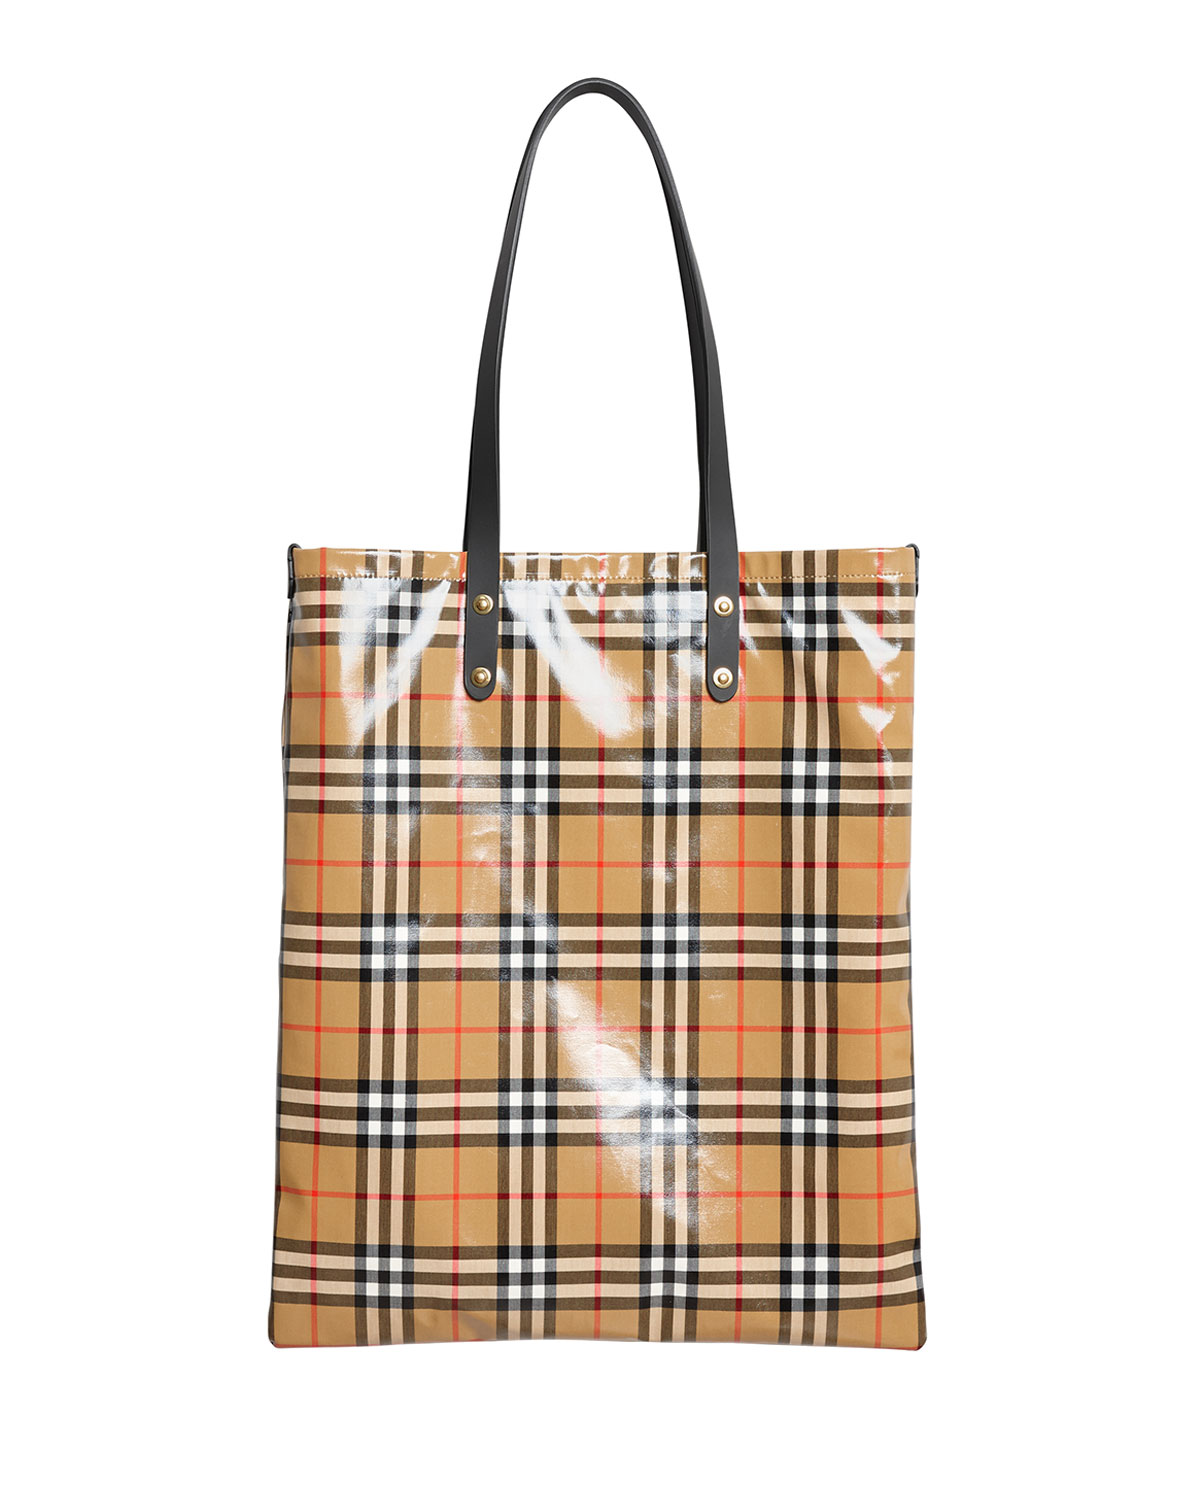 d30da8071a977 Burberry Coated Vintage Check Large Shopper Tote Bag